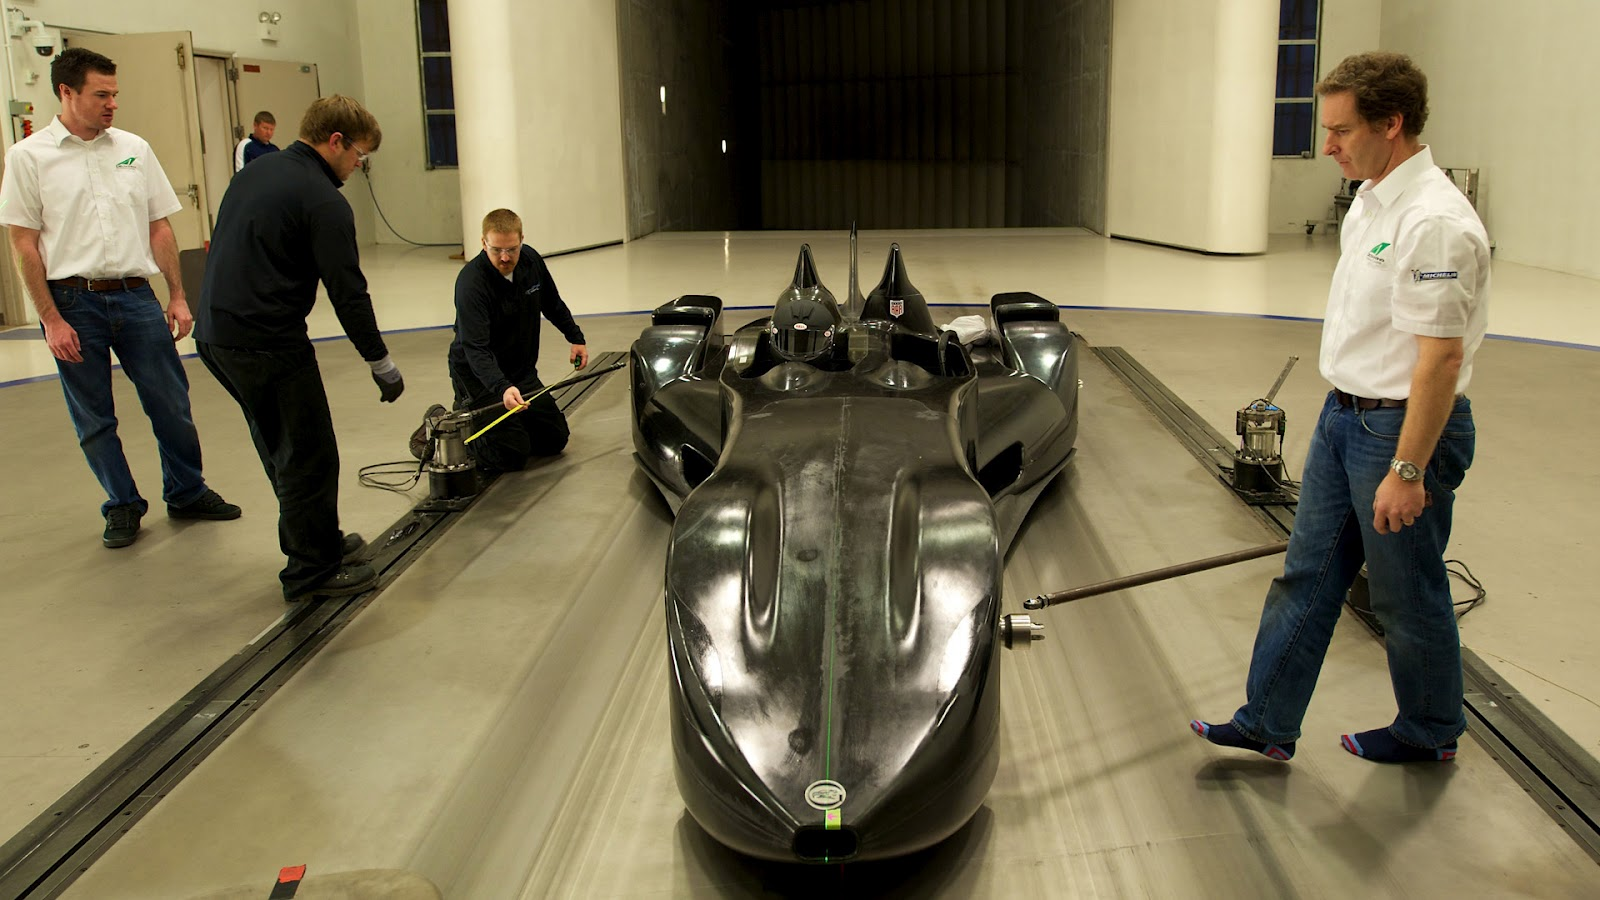 2012 Nissan Delta Wing Garage (View 4 of 12)